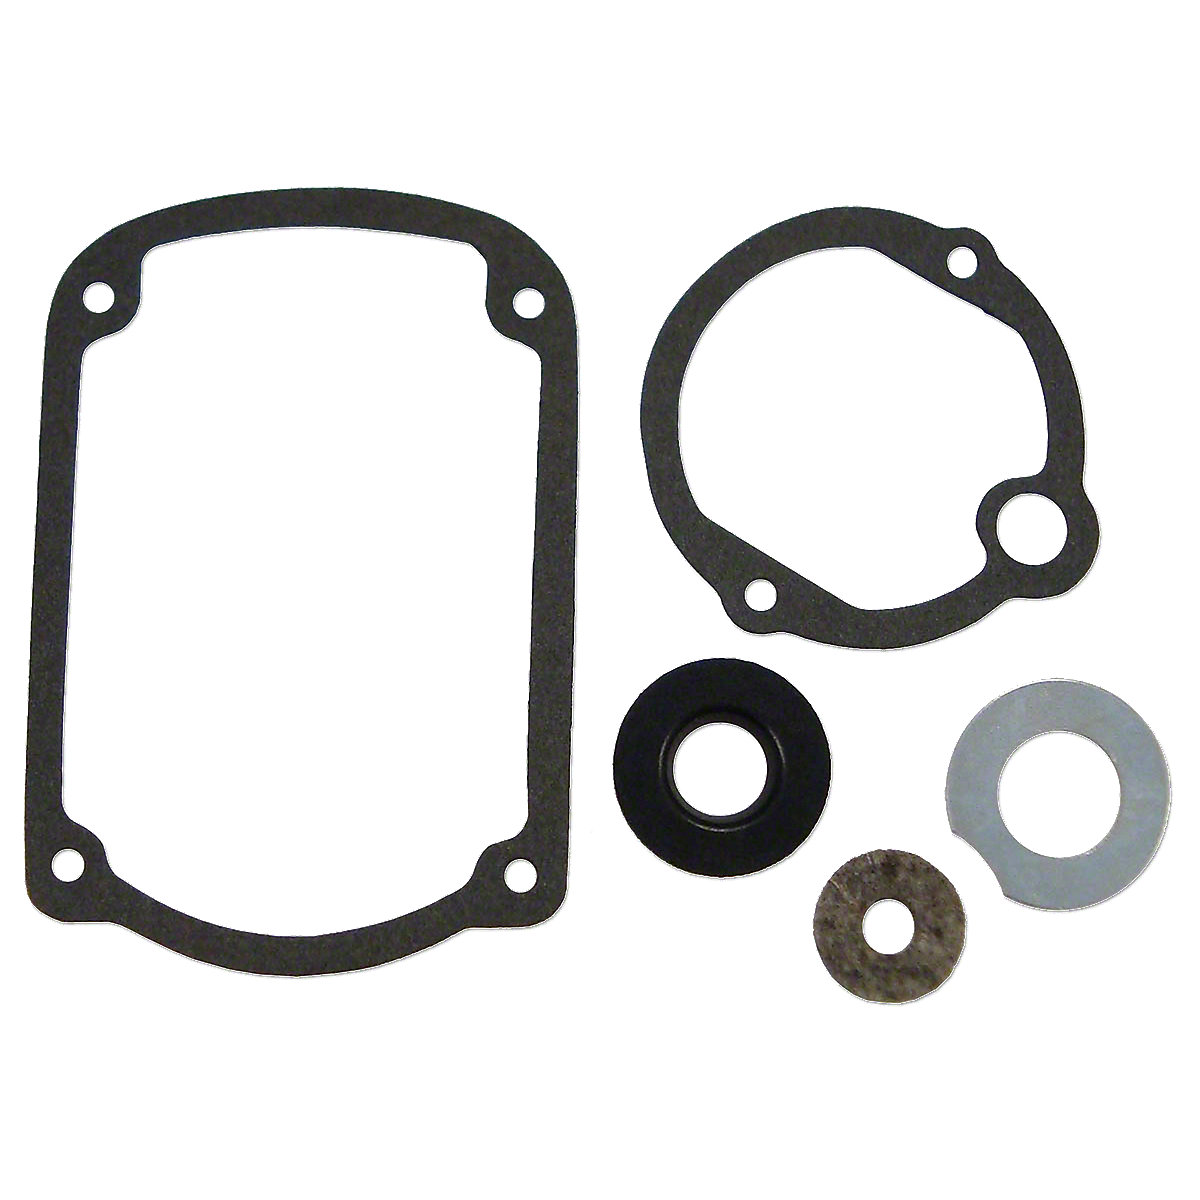 Fairbanks Morris Magneto Gasket Set For Allis Chalmers: B, C, RC, U, WC, WD, WD45, WF.